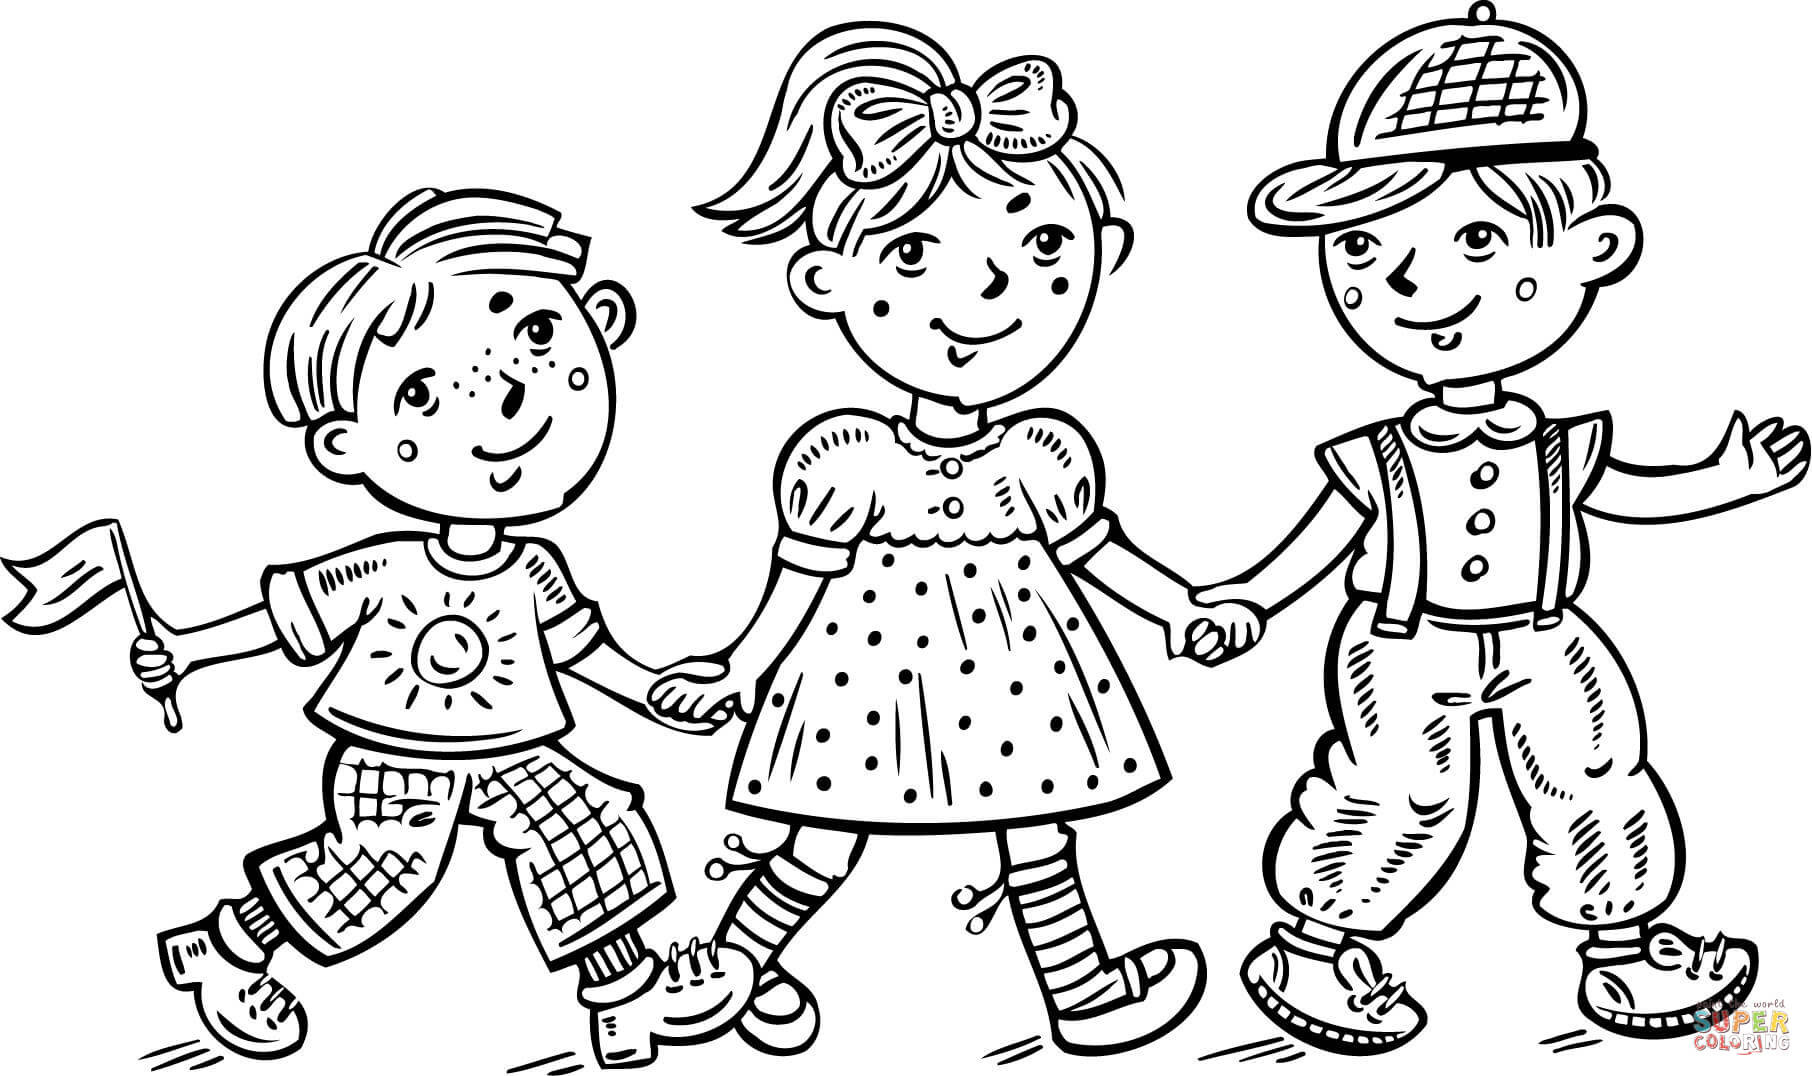 Kids Coloring Pages Performing Arts Boys  Children Boys and a Girl Celebrating coloring page